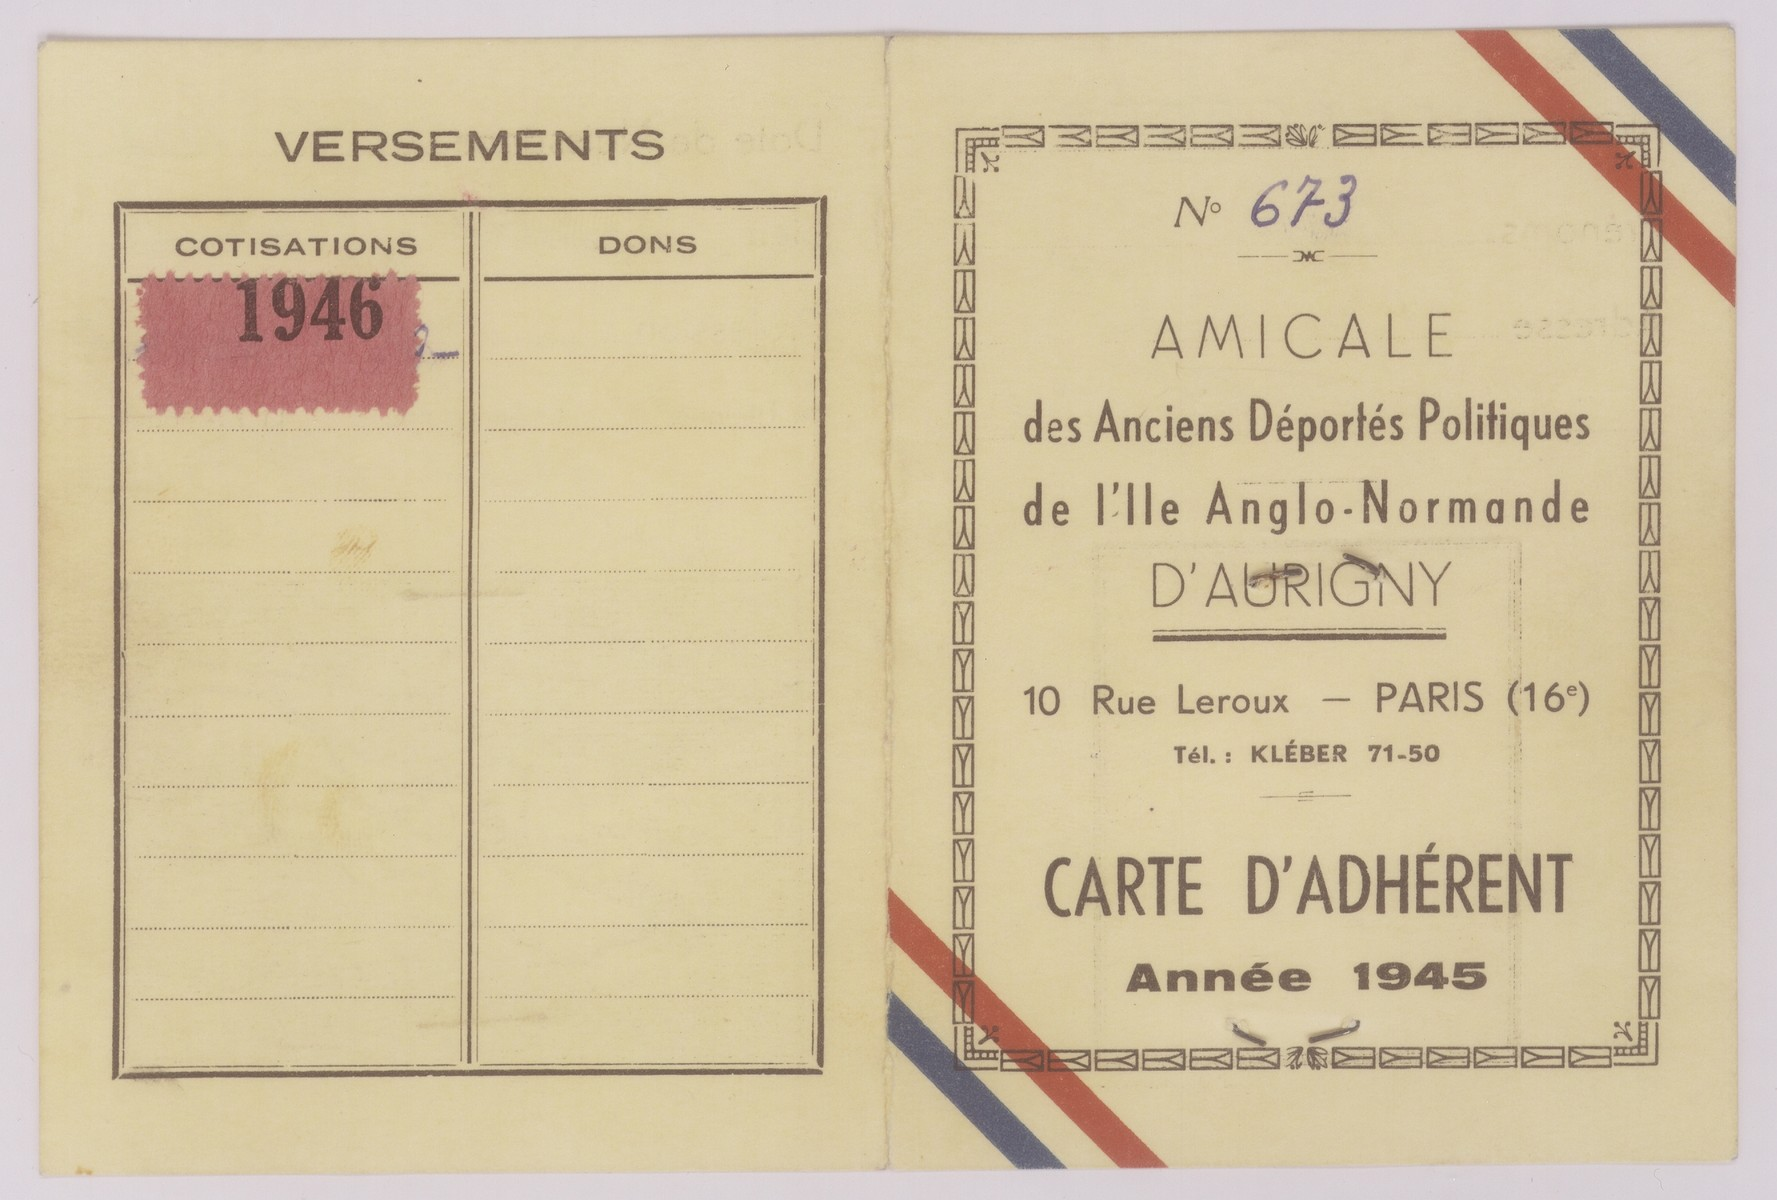 Membership card issued to Werner Neuberger by the Association of Political Deportees to the Ille Anglo-Normand of Aurigny.